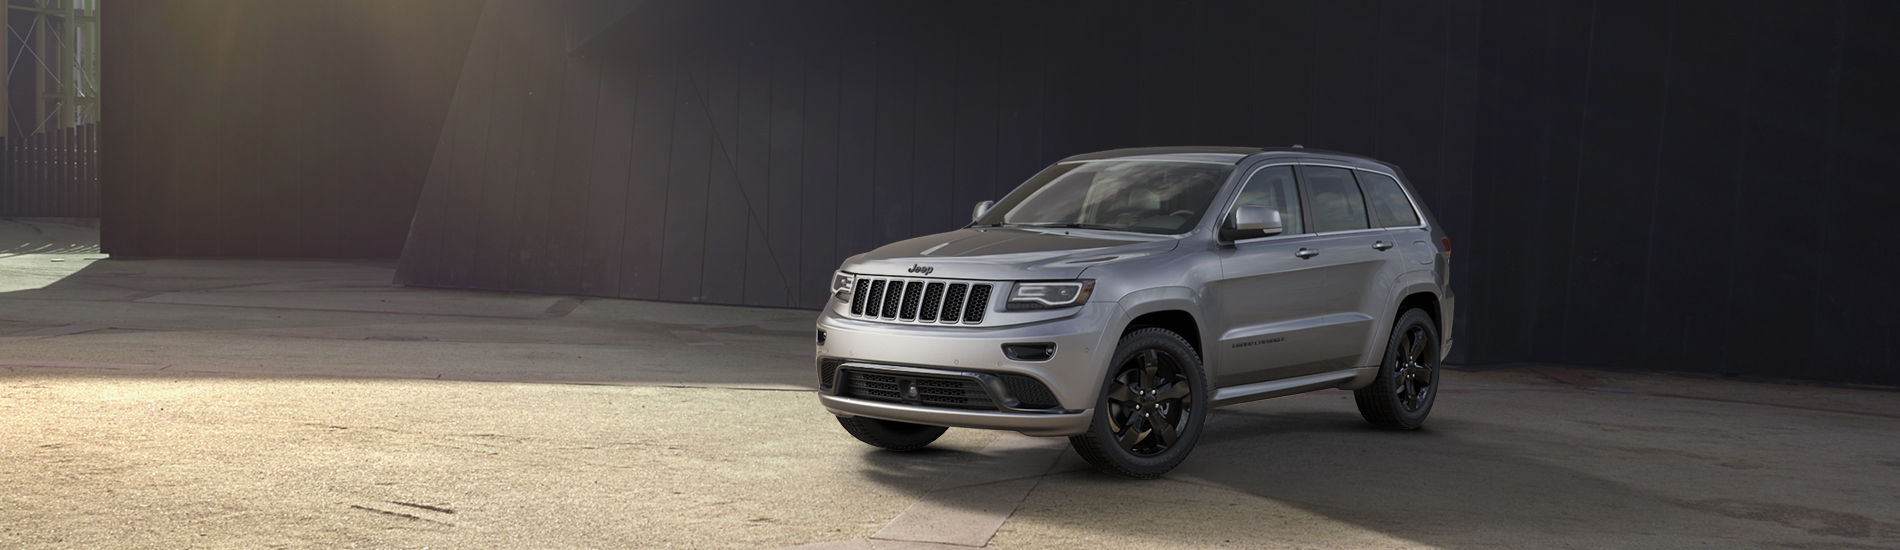 New Jeep Grand Cherokee For Sale Cicero NY